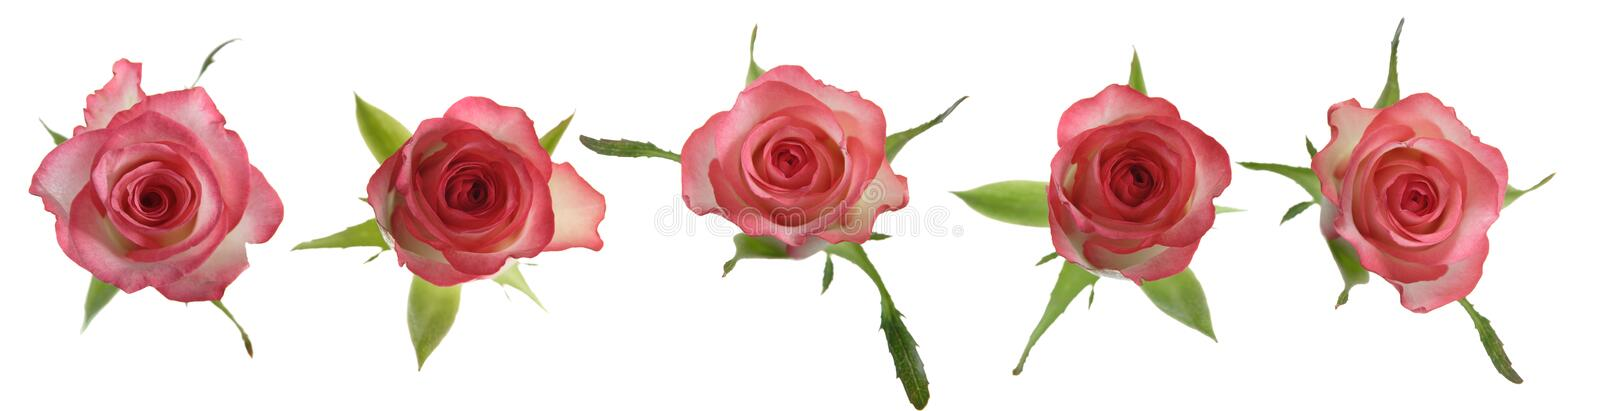 Pink roses, linear arrangement royalty free stock images